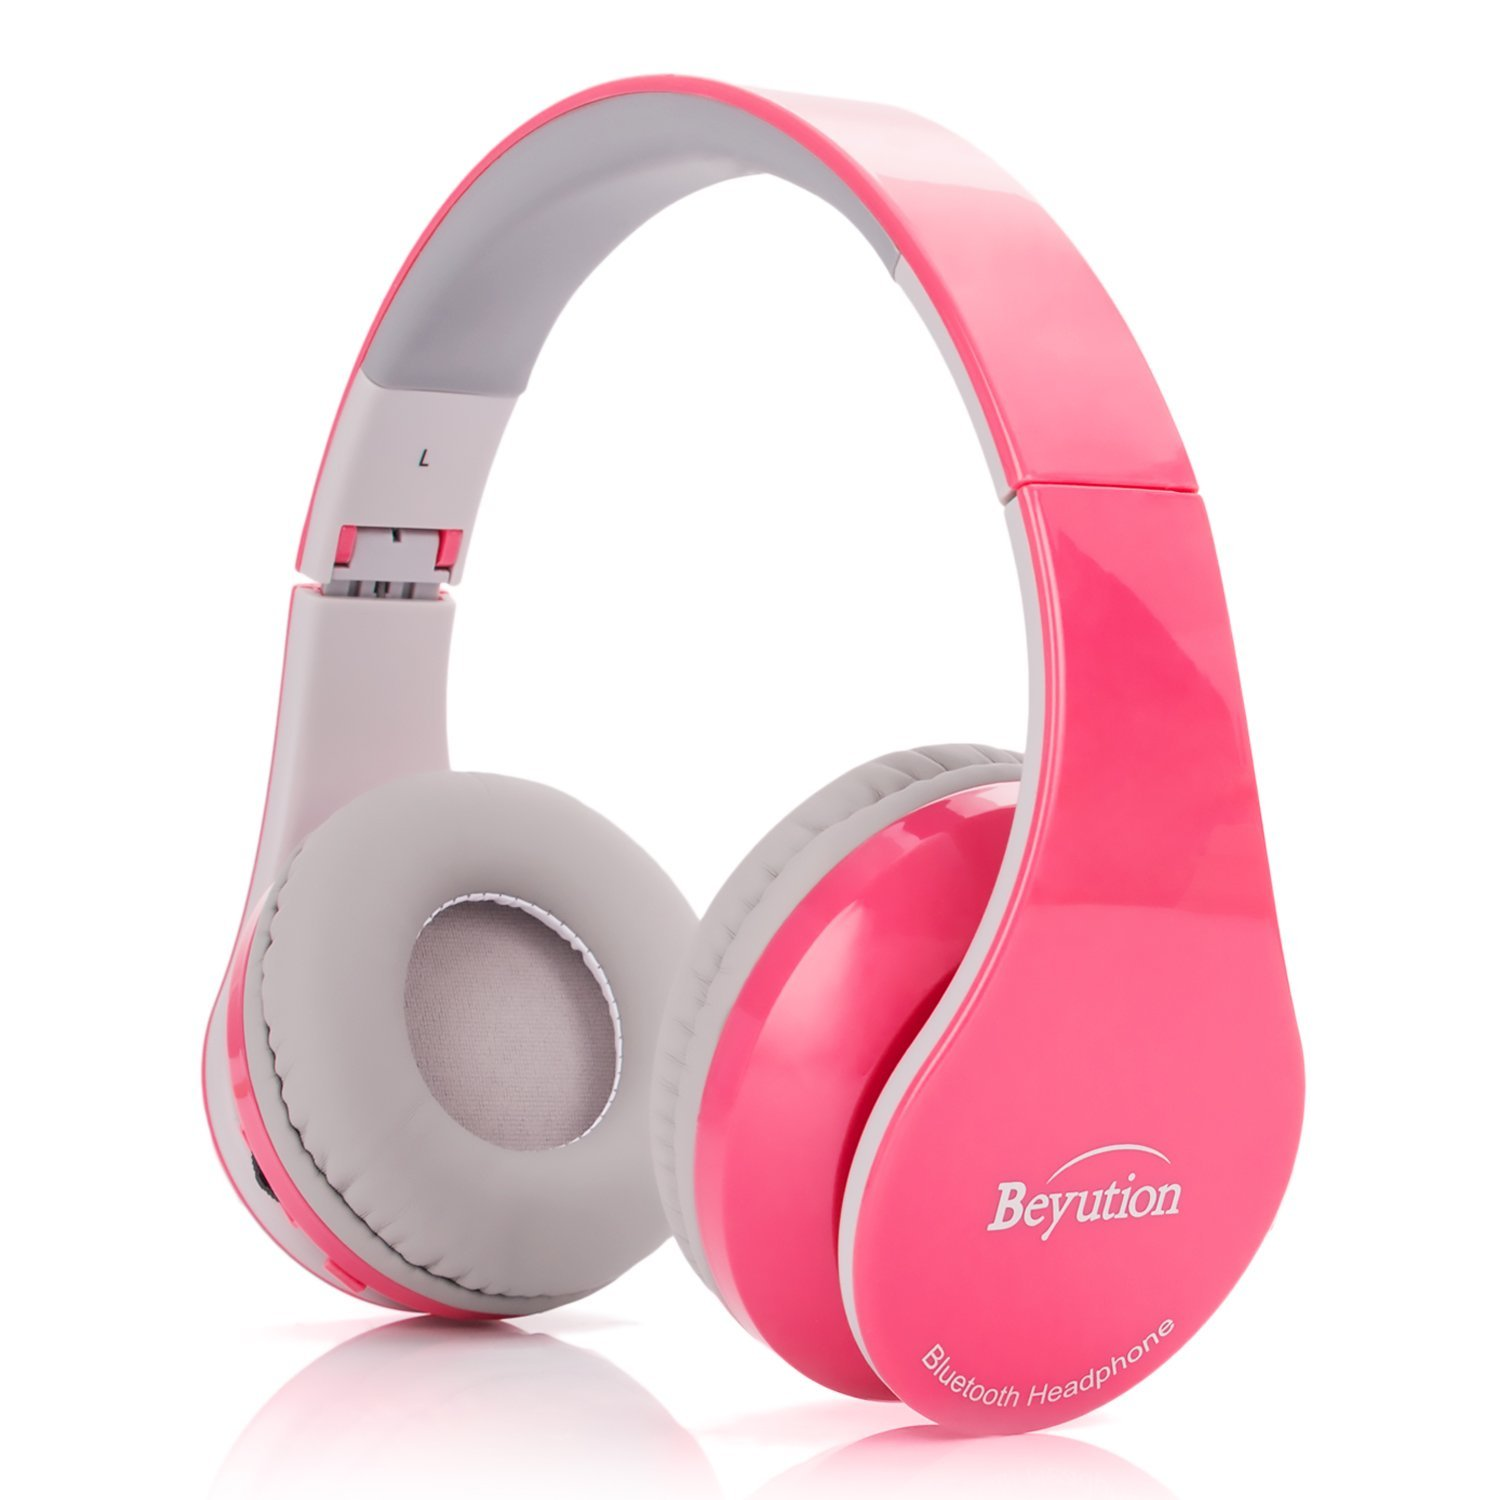 Auriculares Pink Color Beyution513@ Over-Ear- HiFi Stereo-Built in Clear Mic-Phone-Pink Bluetooth V4.1 Headset